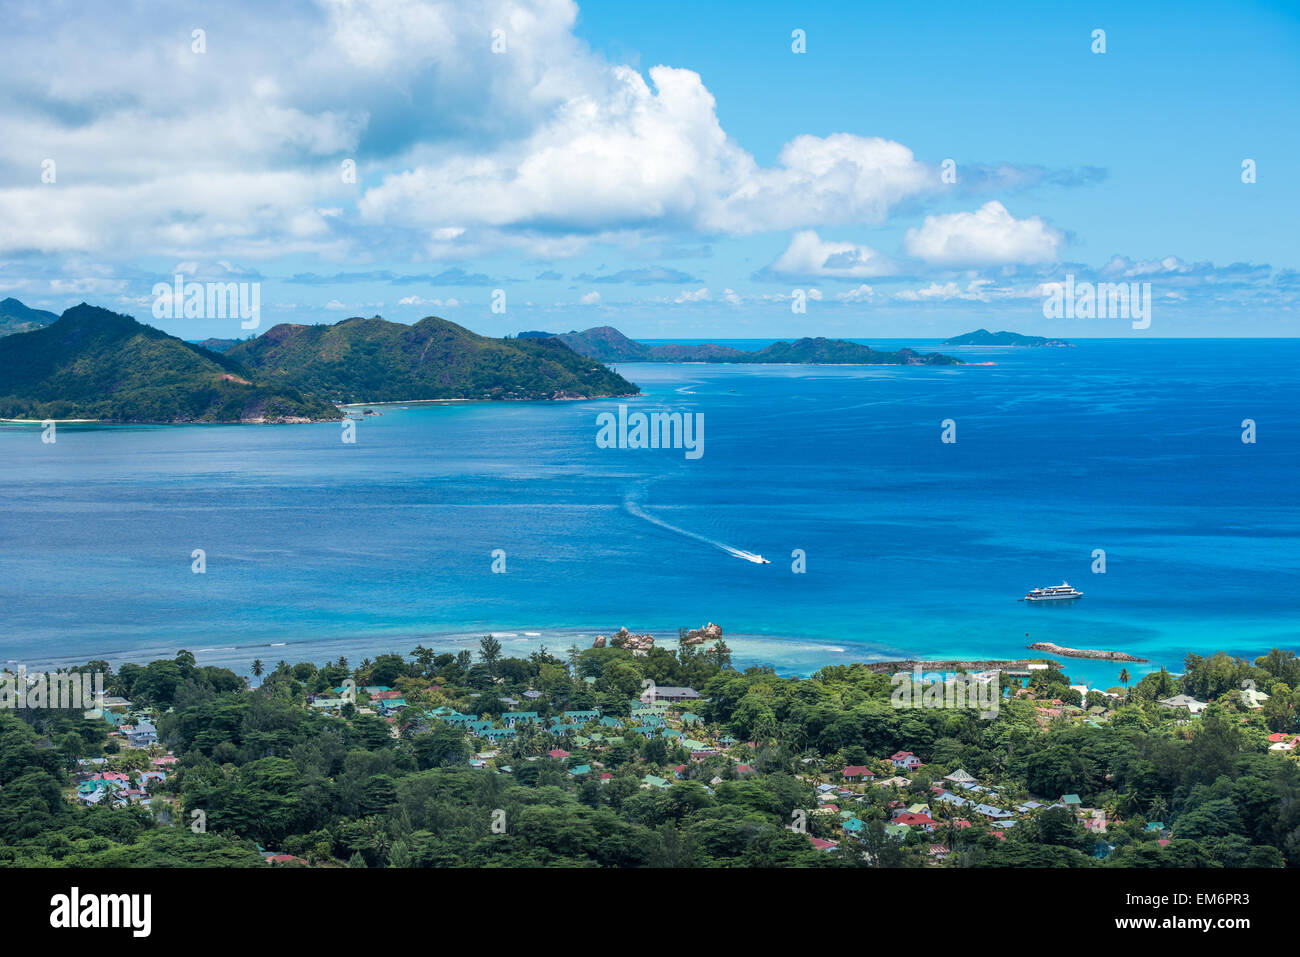 Panorama of La Digue island from Nid d'Aigle viewpoint, Seychelles - Stock Image